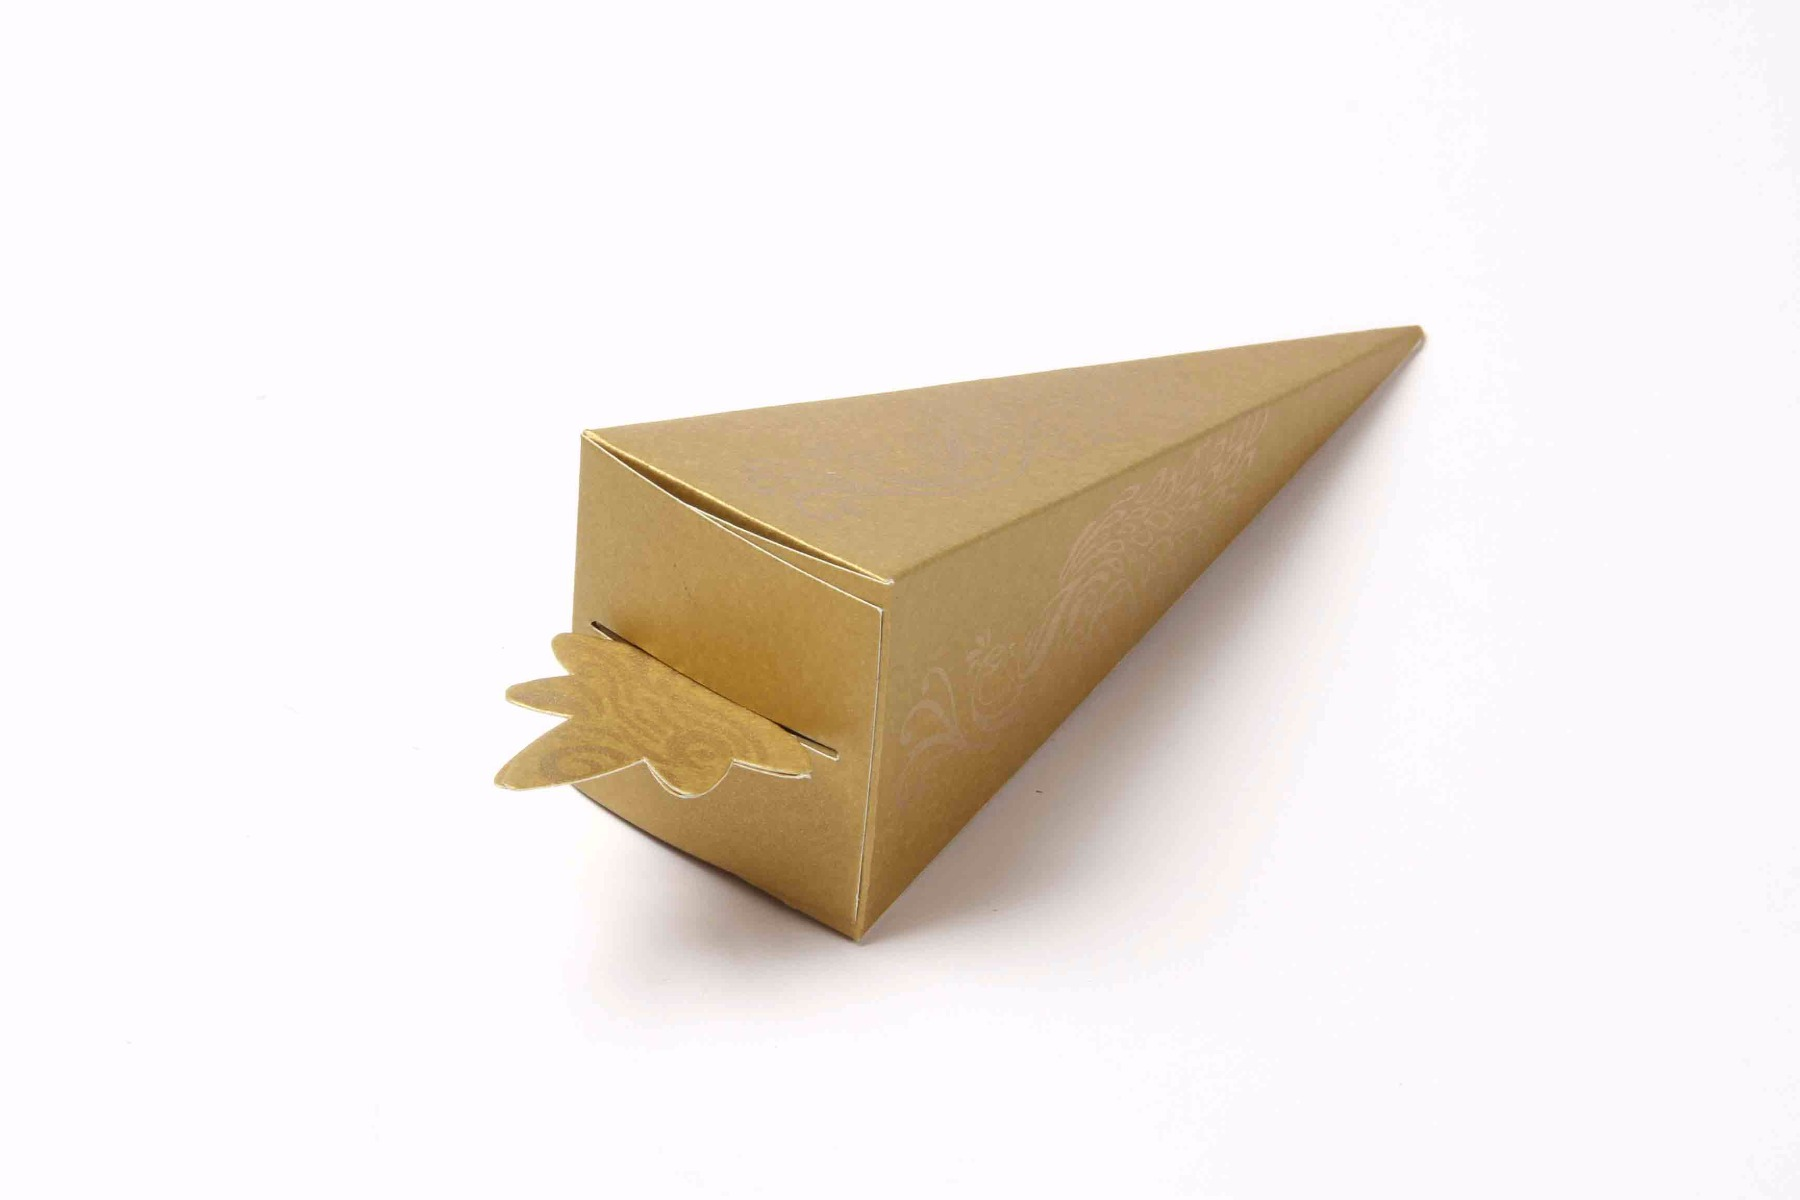 Cone Shaped Favor Box in Golden Color